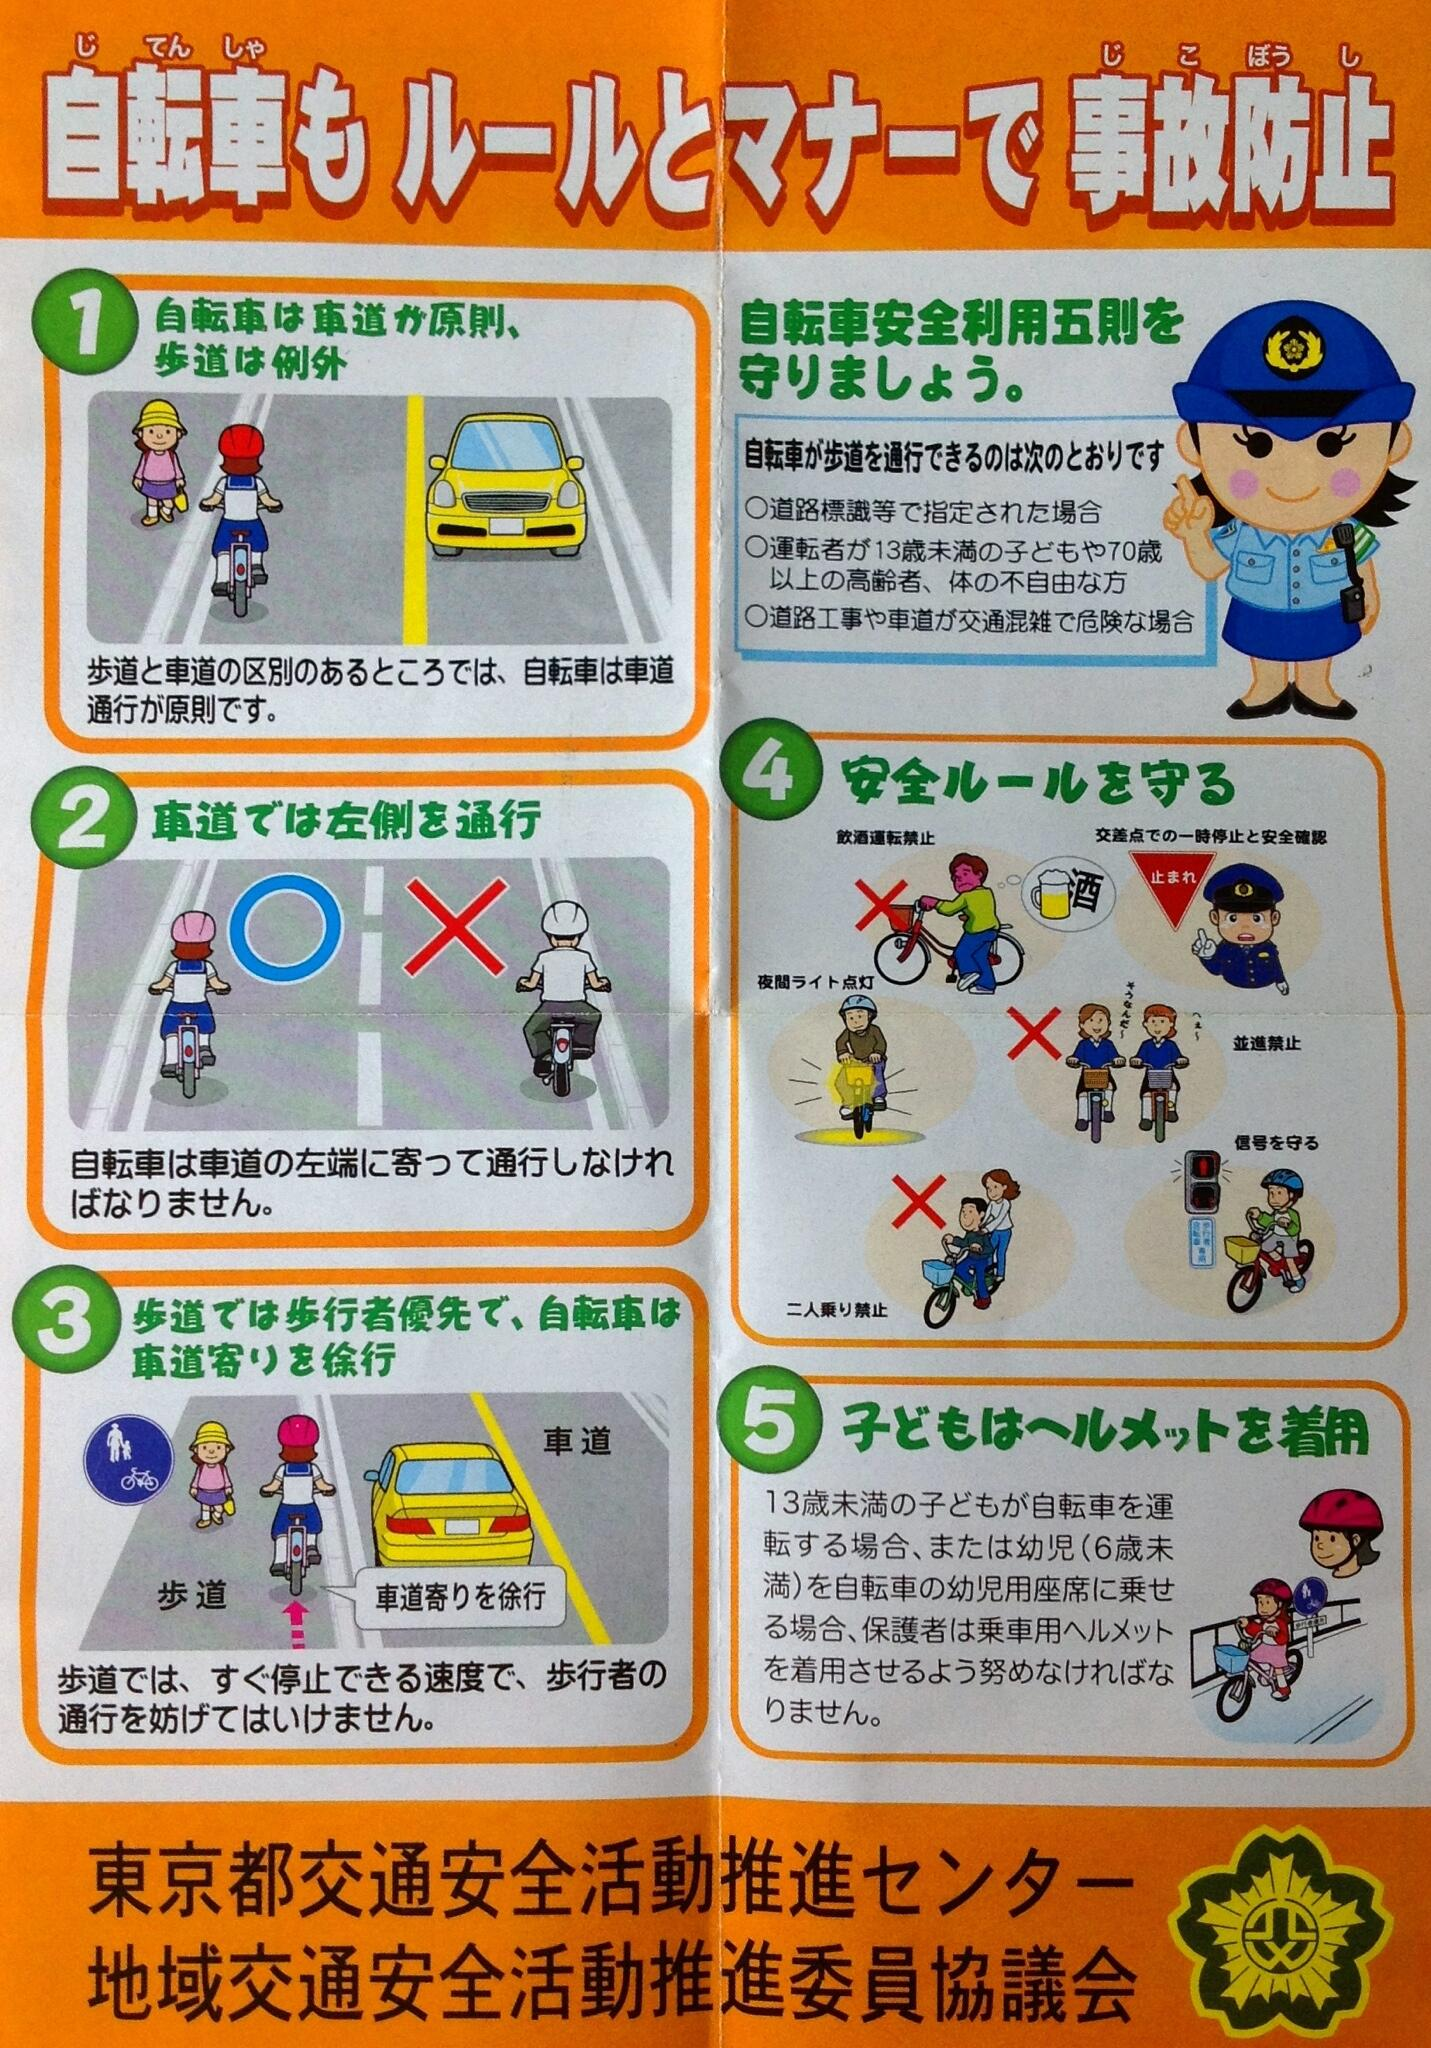 RT @tokyobybike: Bicycle safety leaflet handed out to cyclists in Tokyo yesterday (front) http://t.co/cEV50IrB1y